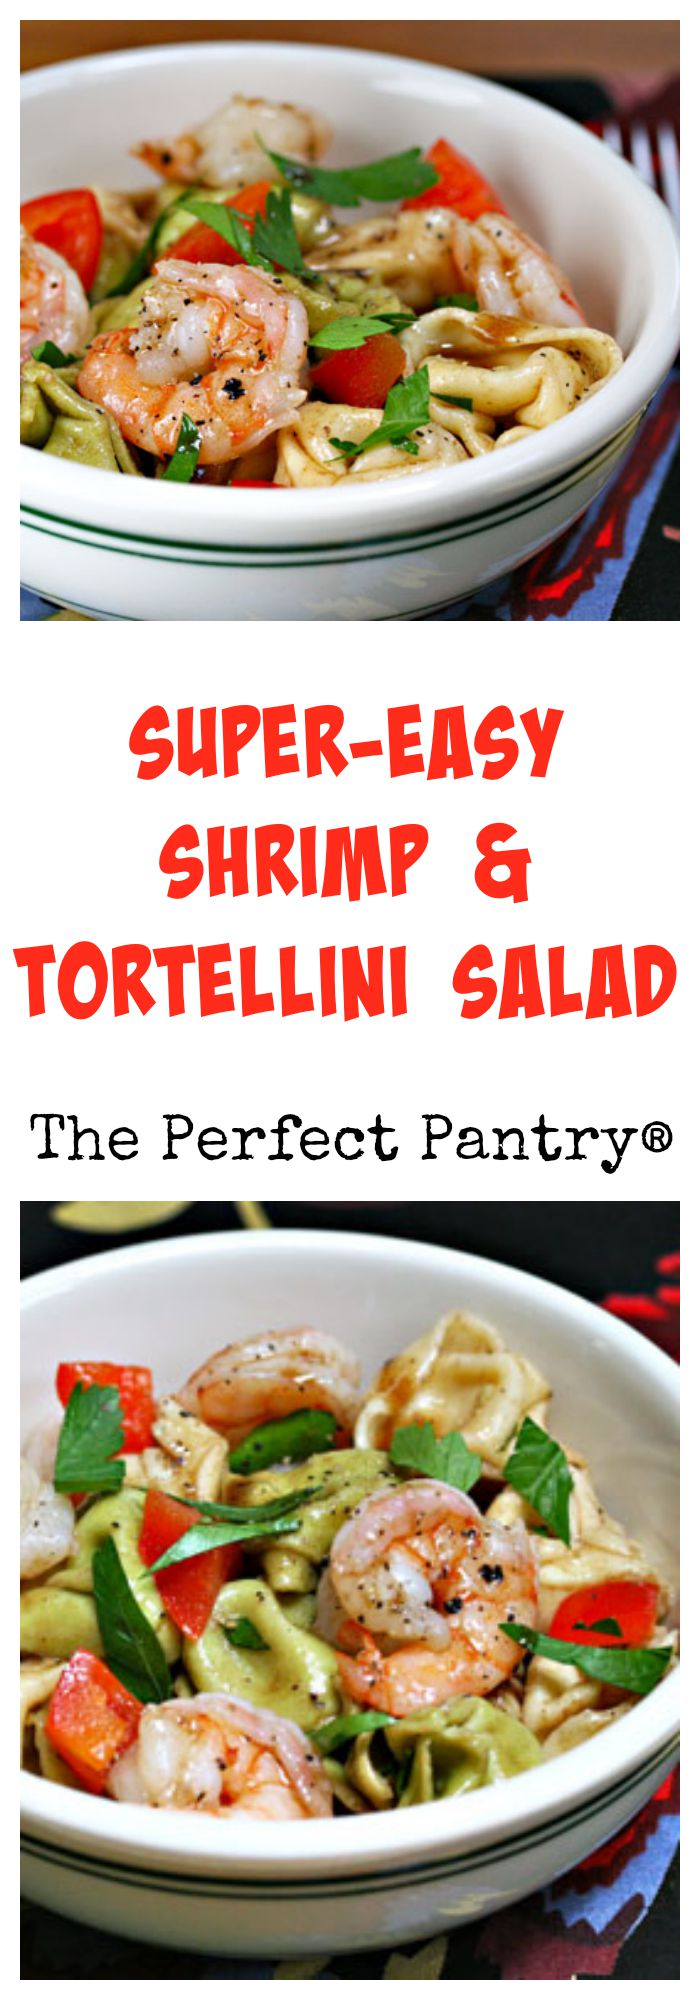 Perfect for a potluck, cheese-filled tortellini and shrimp salad from The Perfect Pantry.